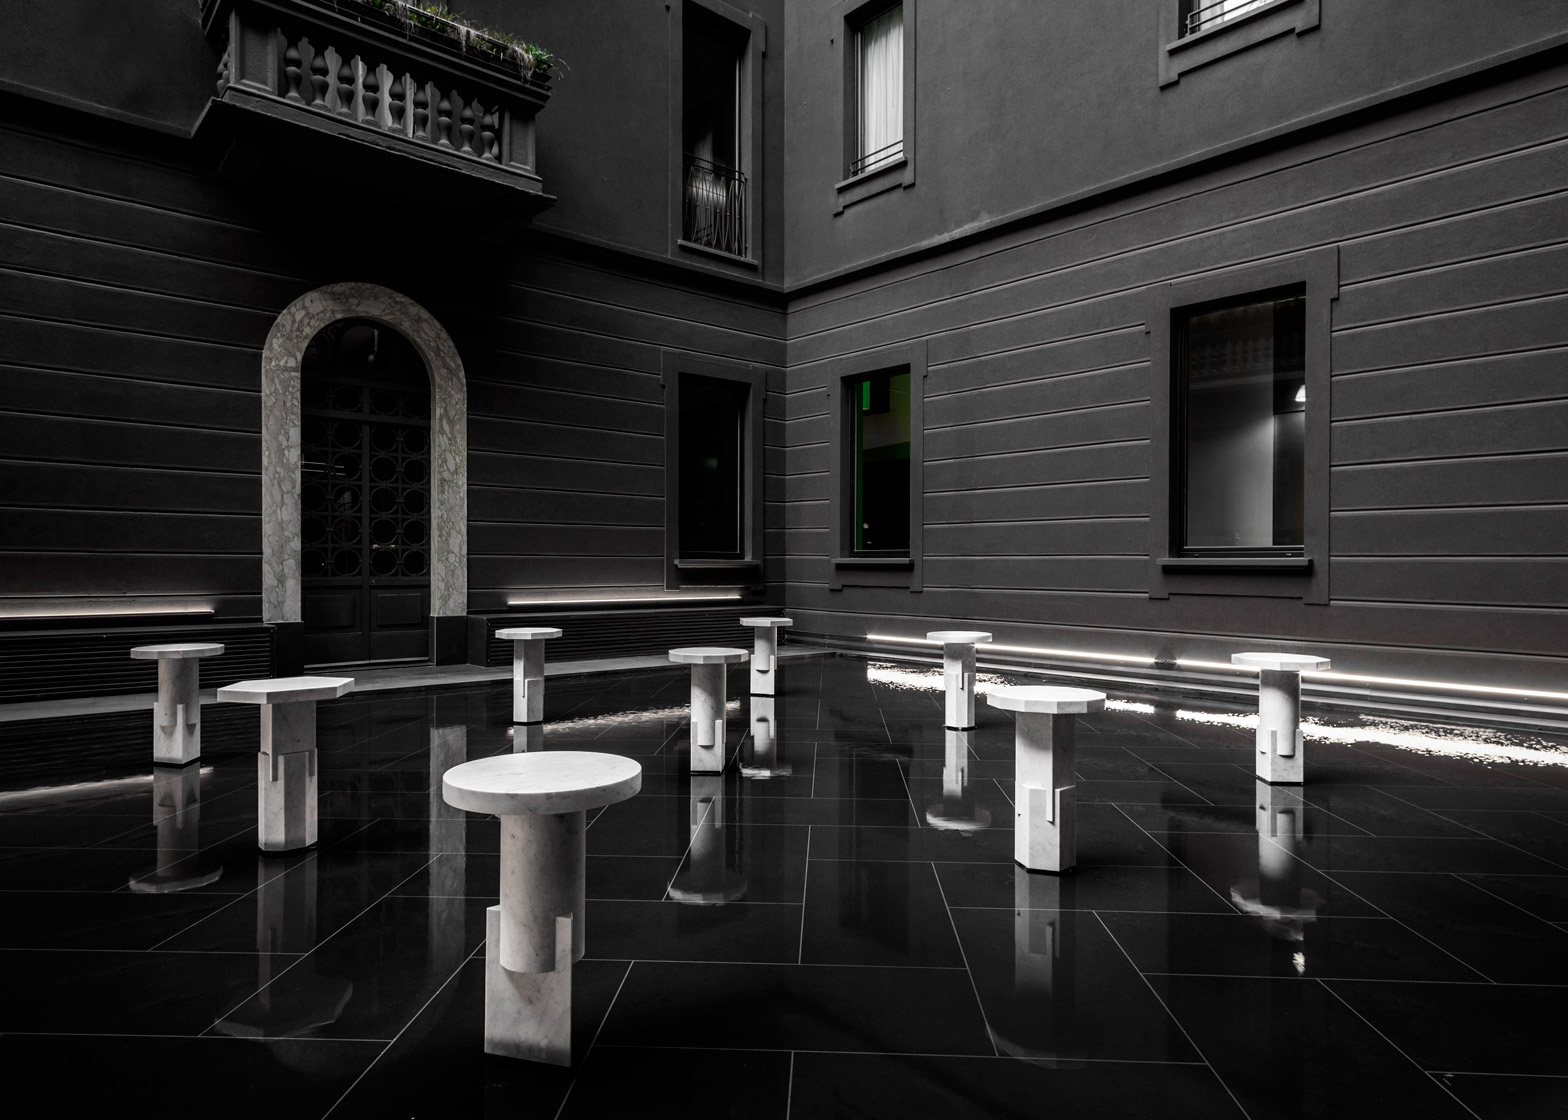 marble design Marble Design Trend: from Design to Art this Stone is Everywhere kapital collection by oeuffice carwan gallery senato hotel milan design week dezeen 1568 0